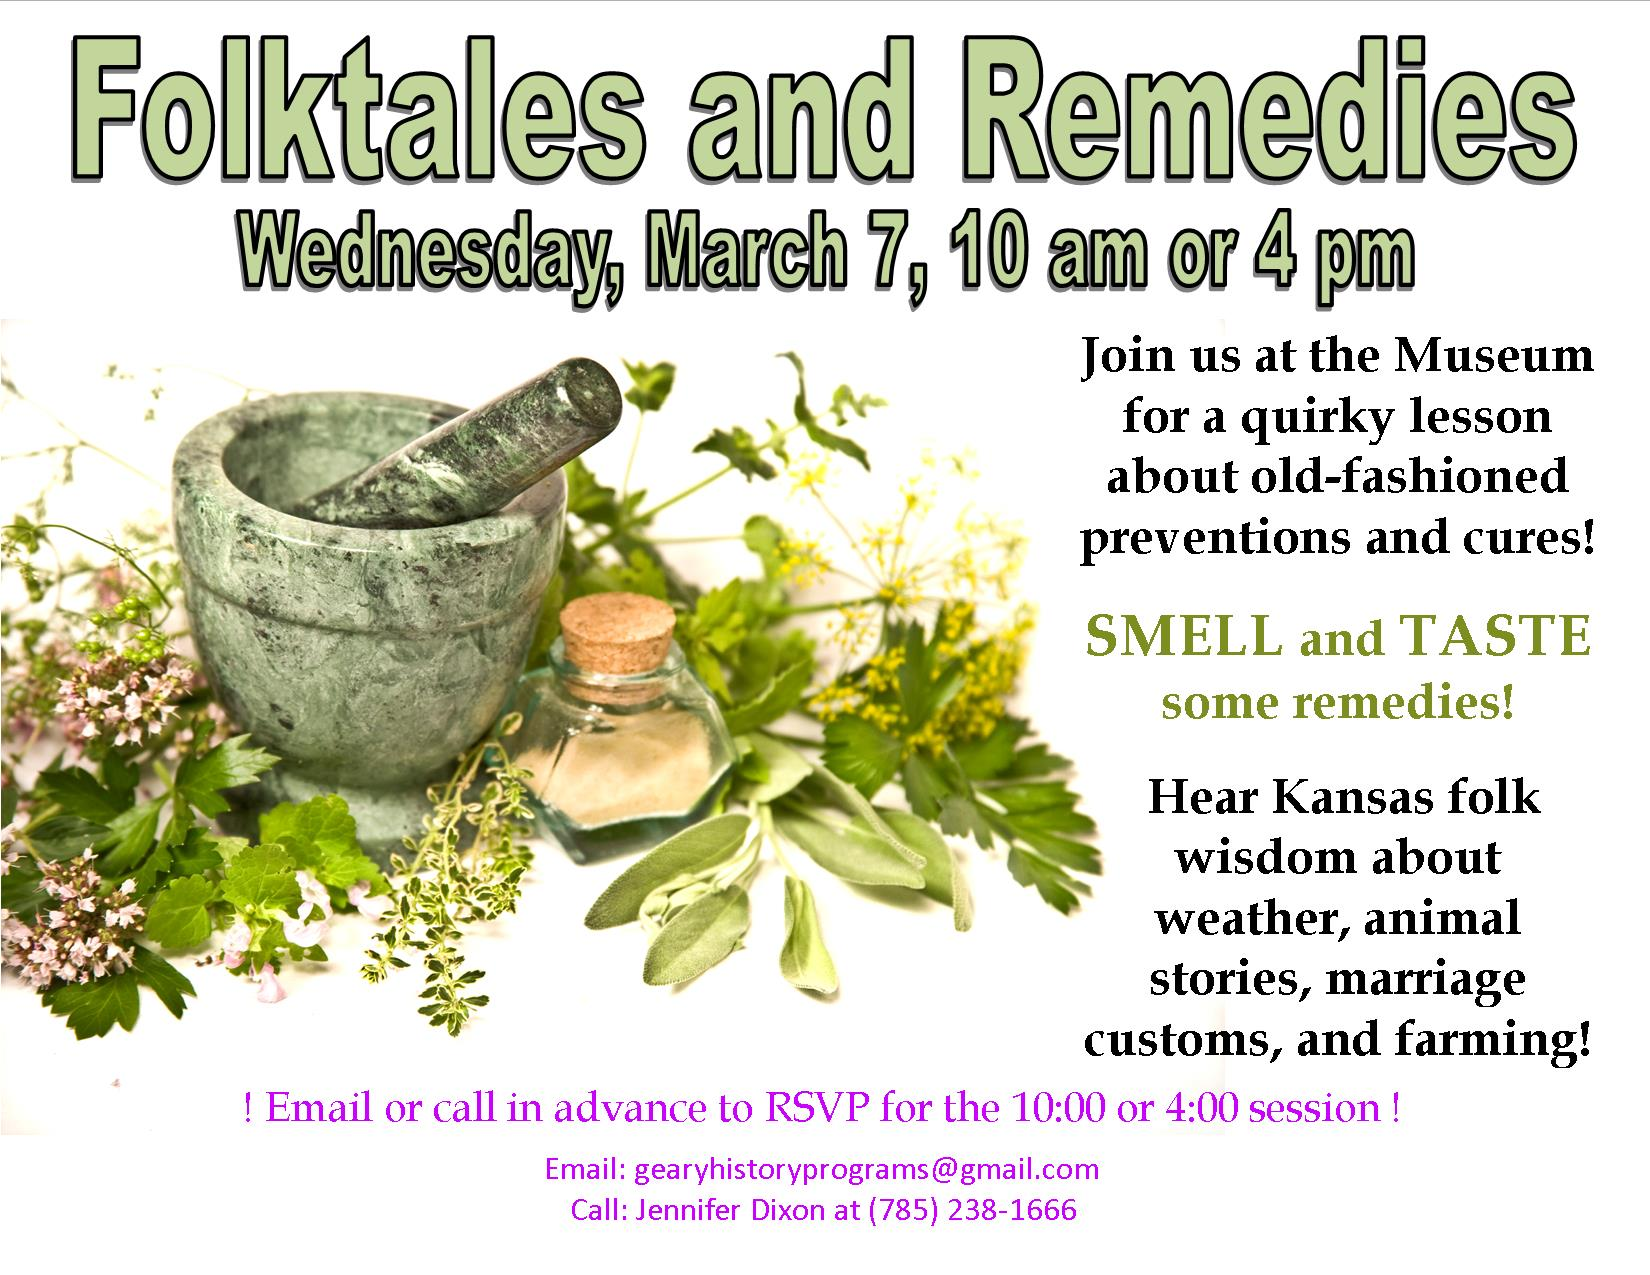 Foldtales and Remedies Flyer